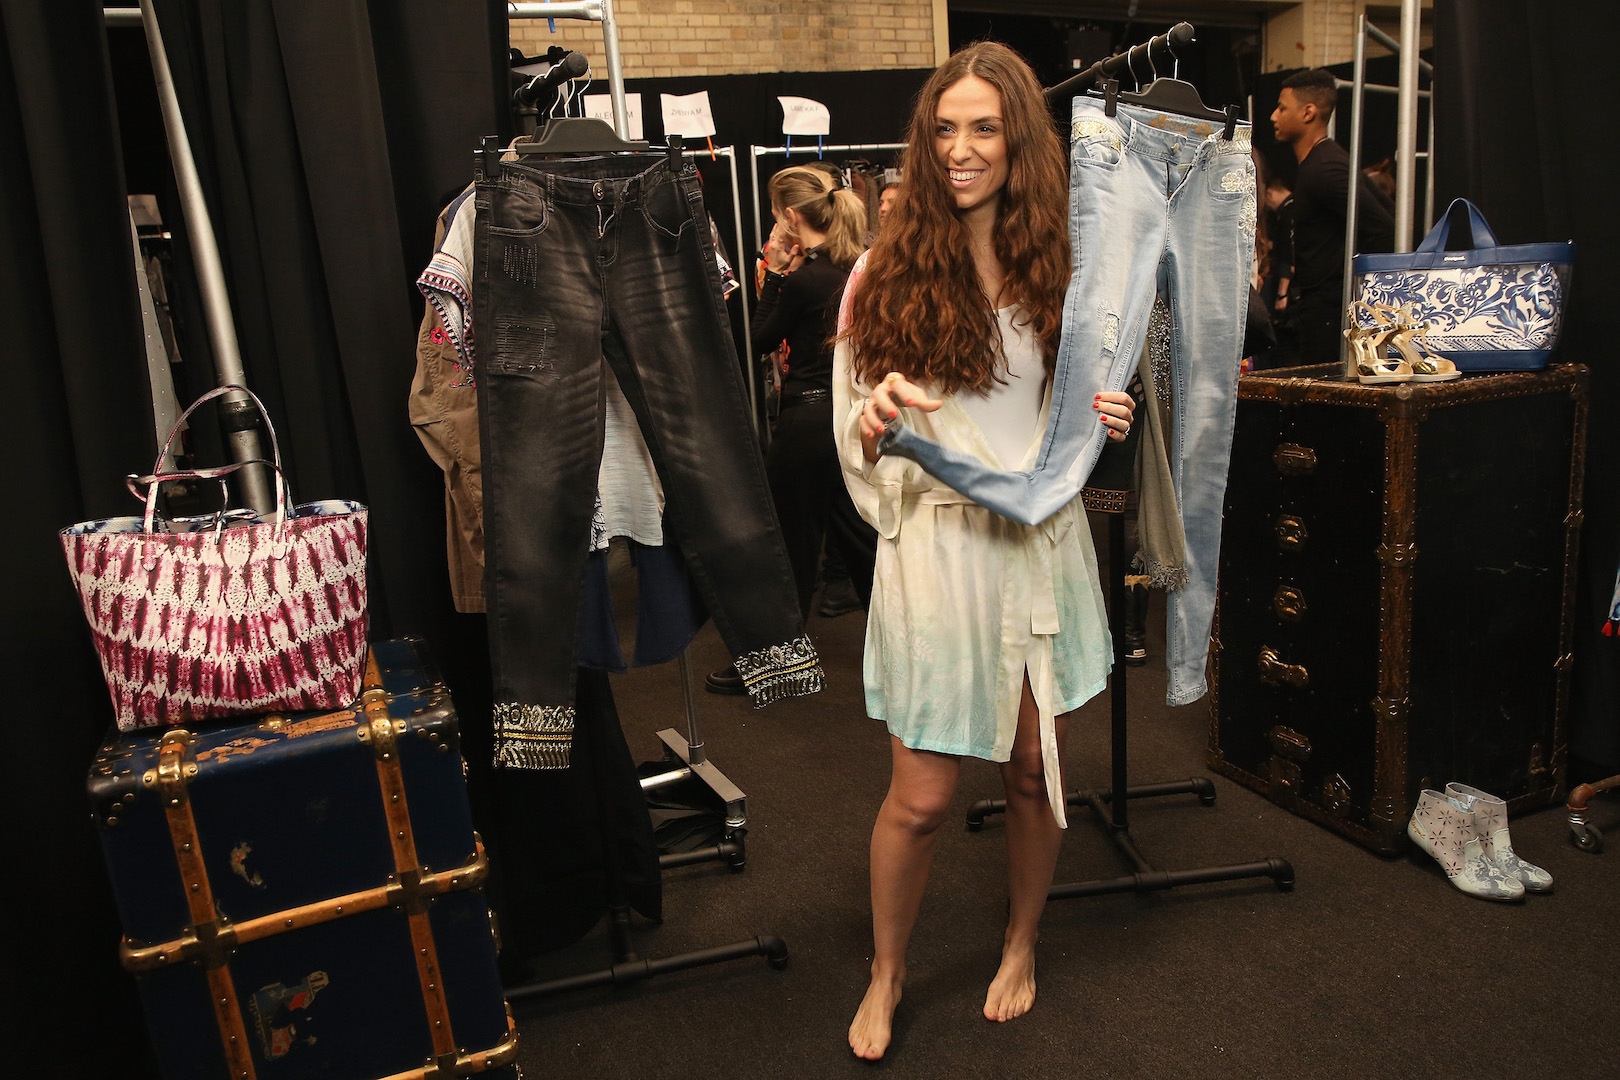 NEW YORK, NY - FEBRUARY 09:  Erika Boldrin backstage before the Desigual fashion show during, New York Fashion Week: The Shows  at Gallery 1, Skylight Clarkson Sq on February 9, 2017 in New York City.  (Photo by Robin Marchant/Getty Images for Desigual)